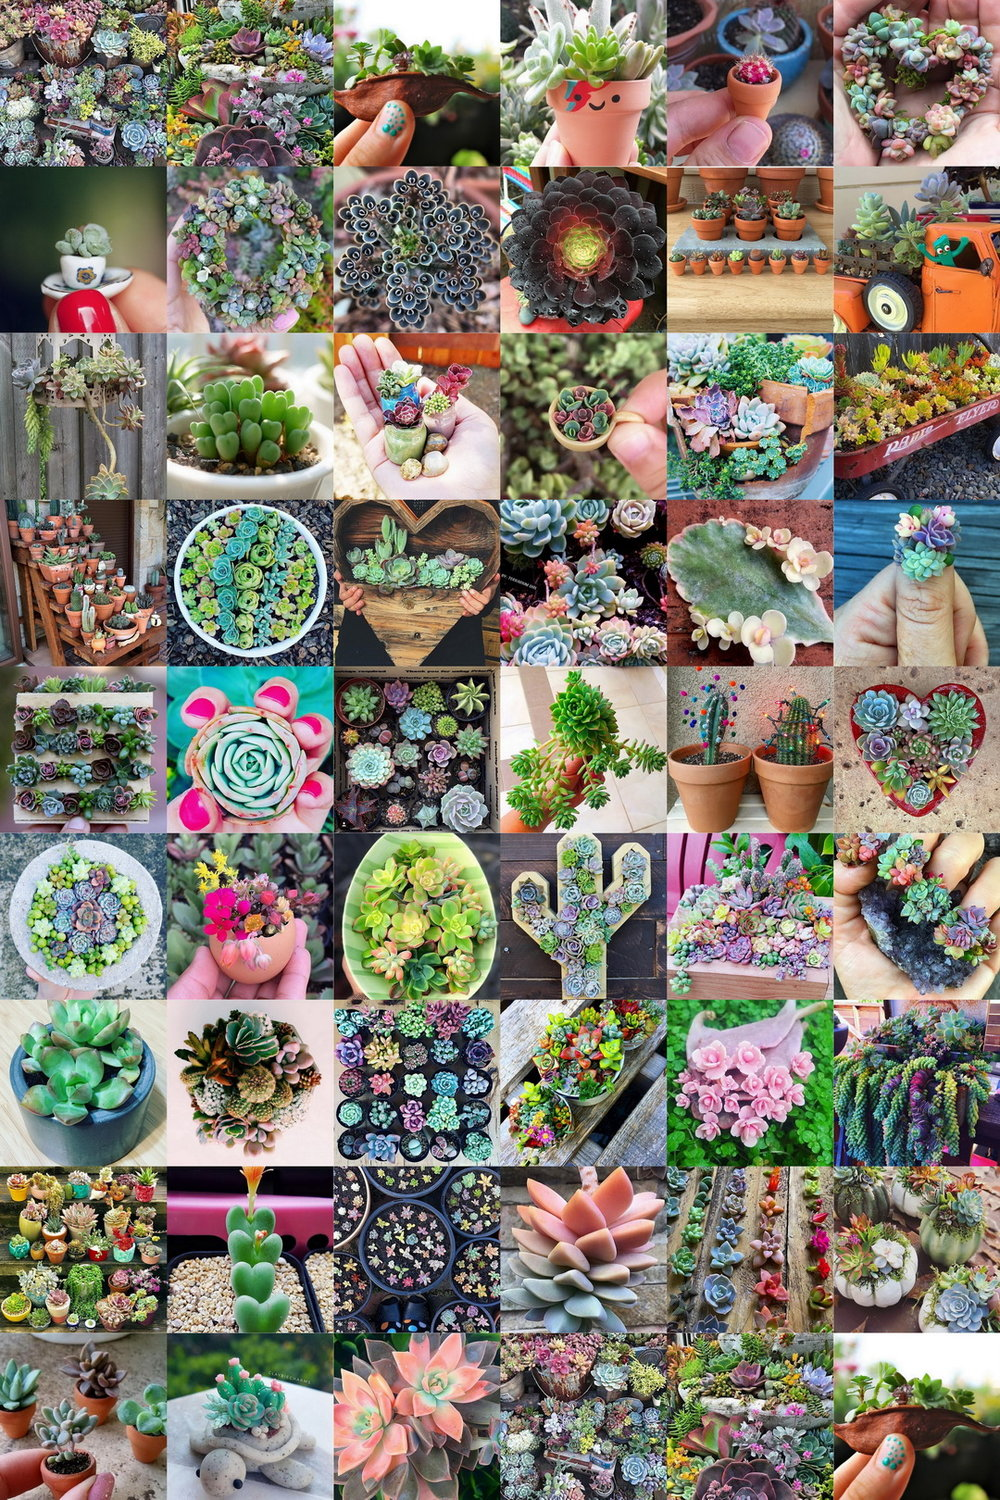 🌵 51 Jaw-Dropping Succulents @succulove